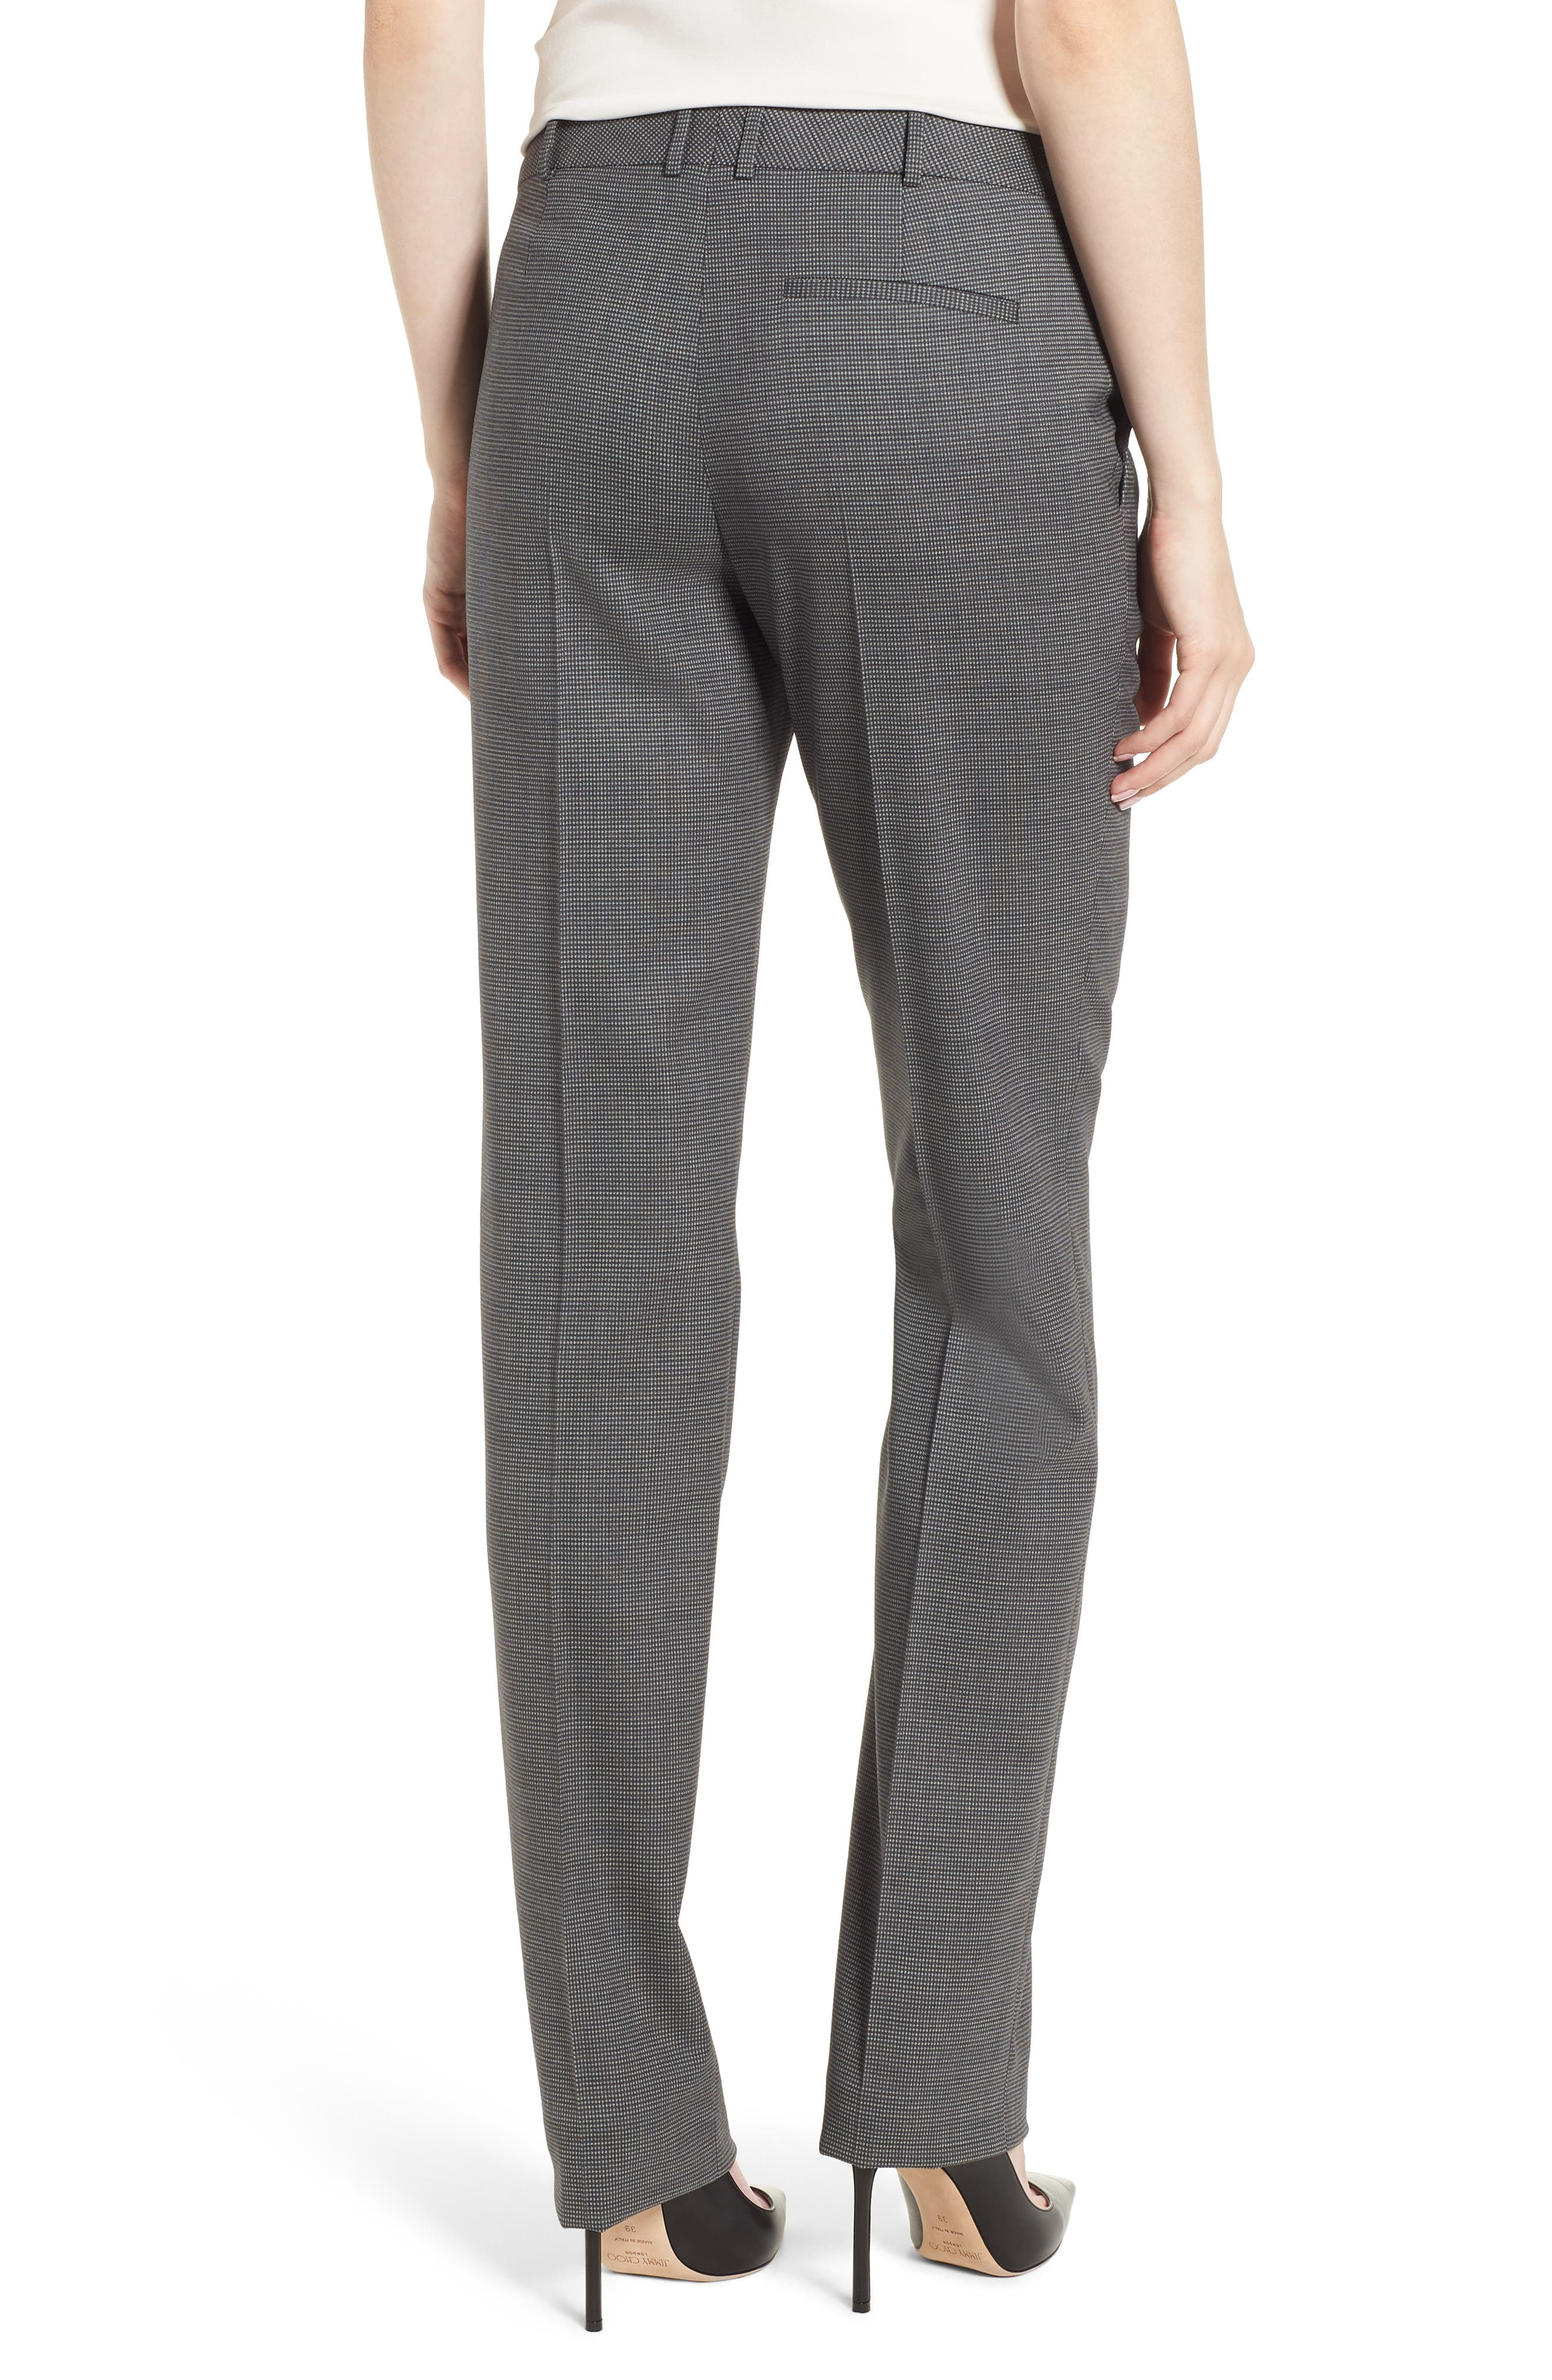 Tamea Minidessin Trousers,                             Alternate thumbnail 2, color,                             Cozy Grey Fantasy